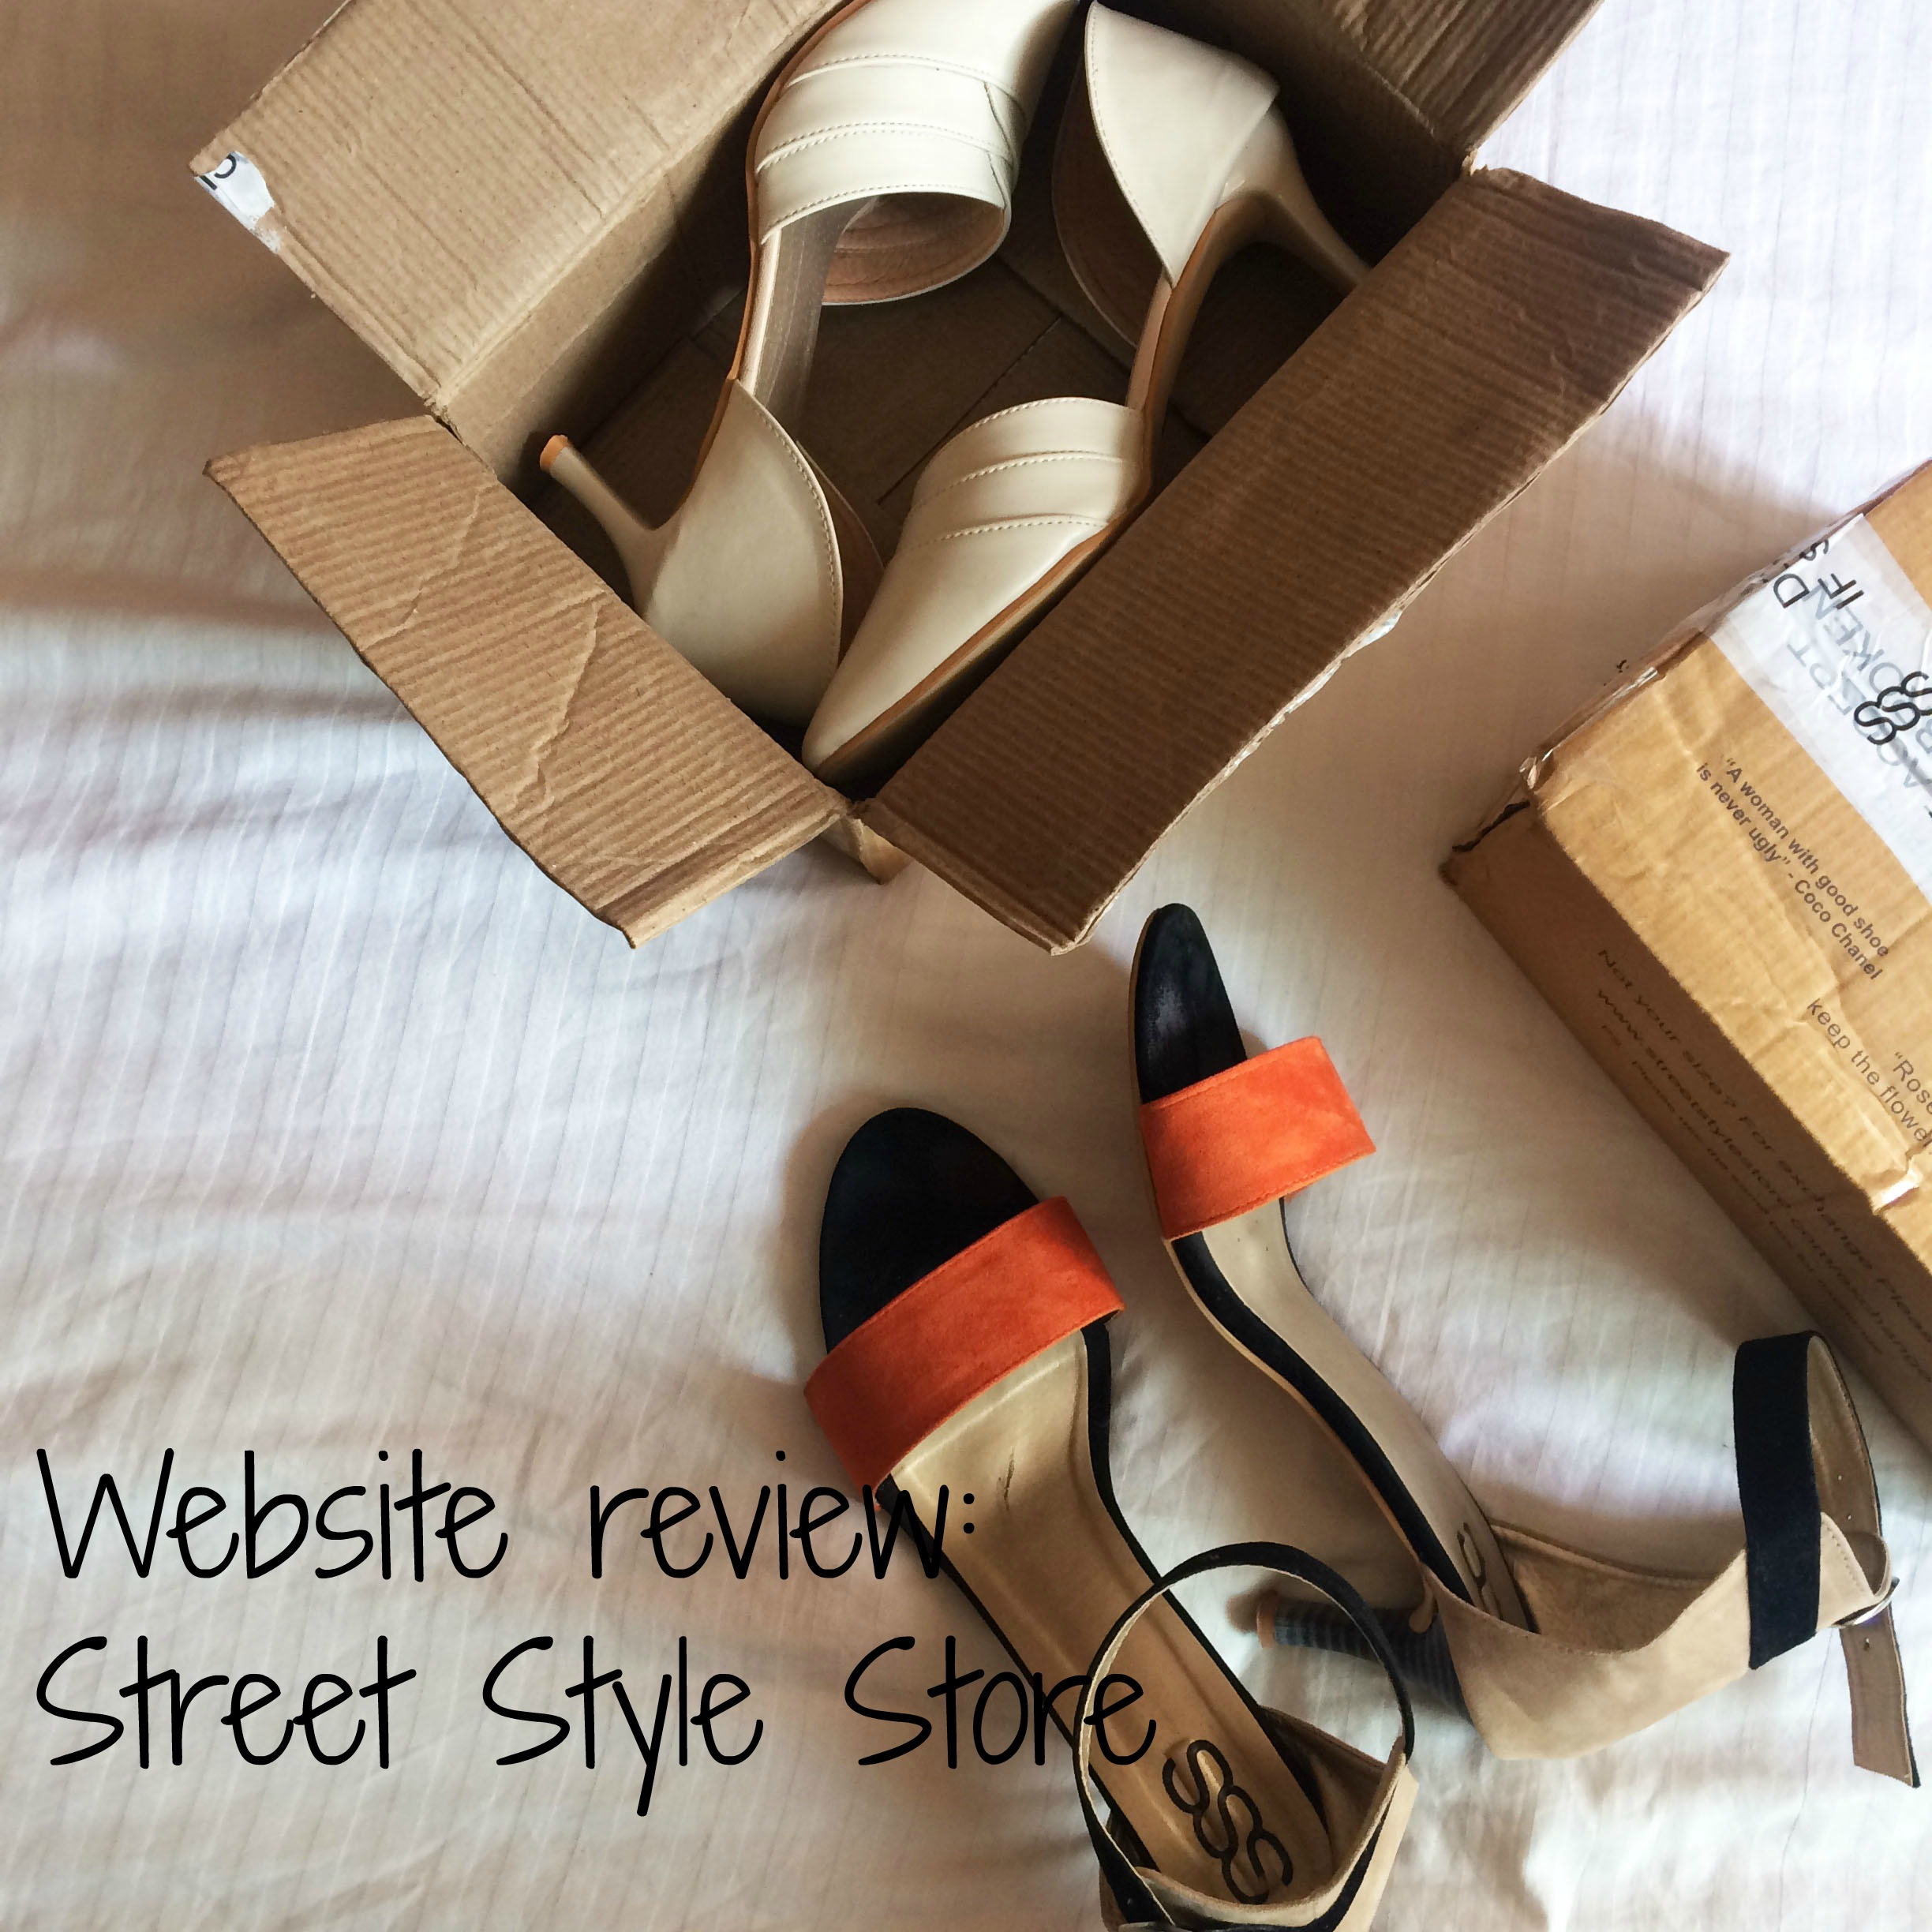 e1571dd462e Website review: Street Style Store – That Whimsical Blogger